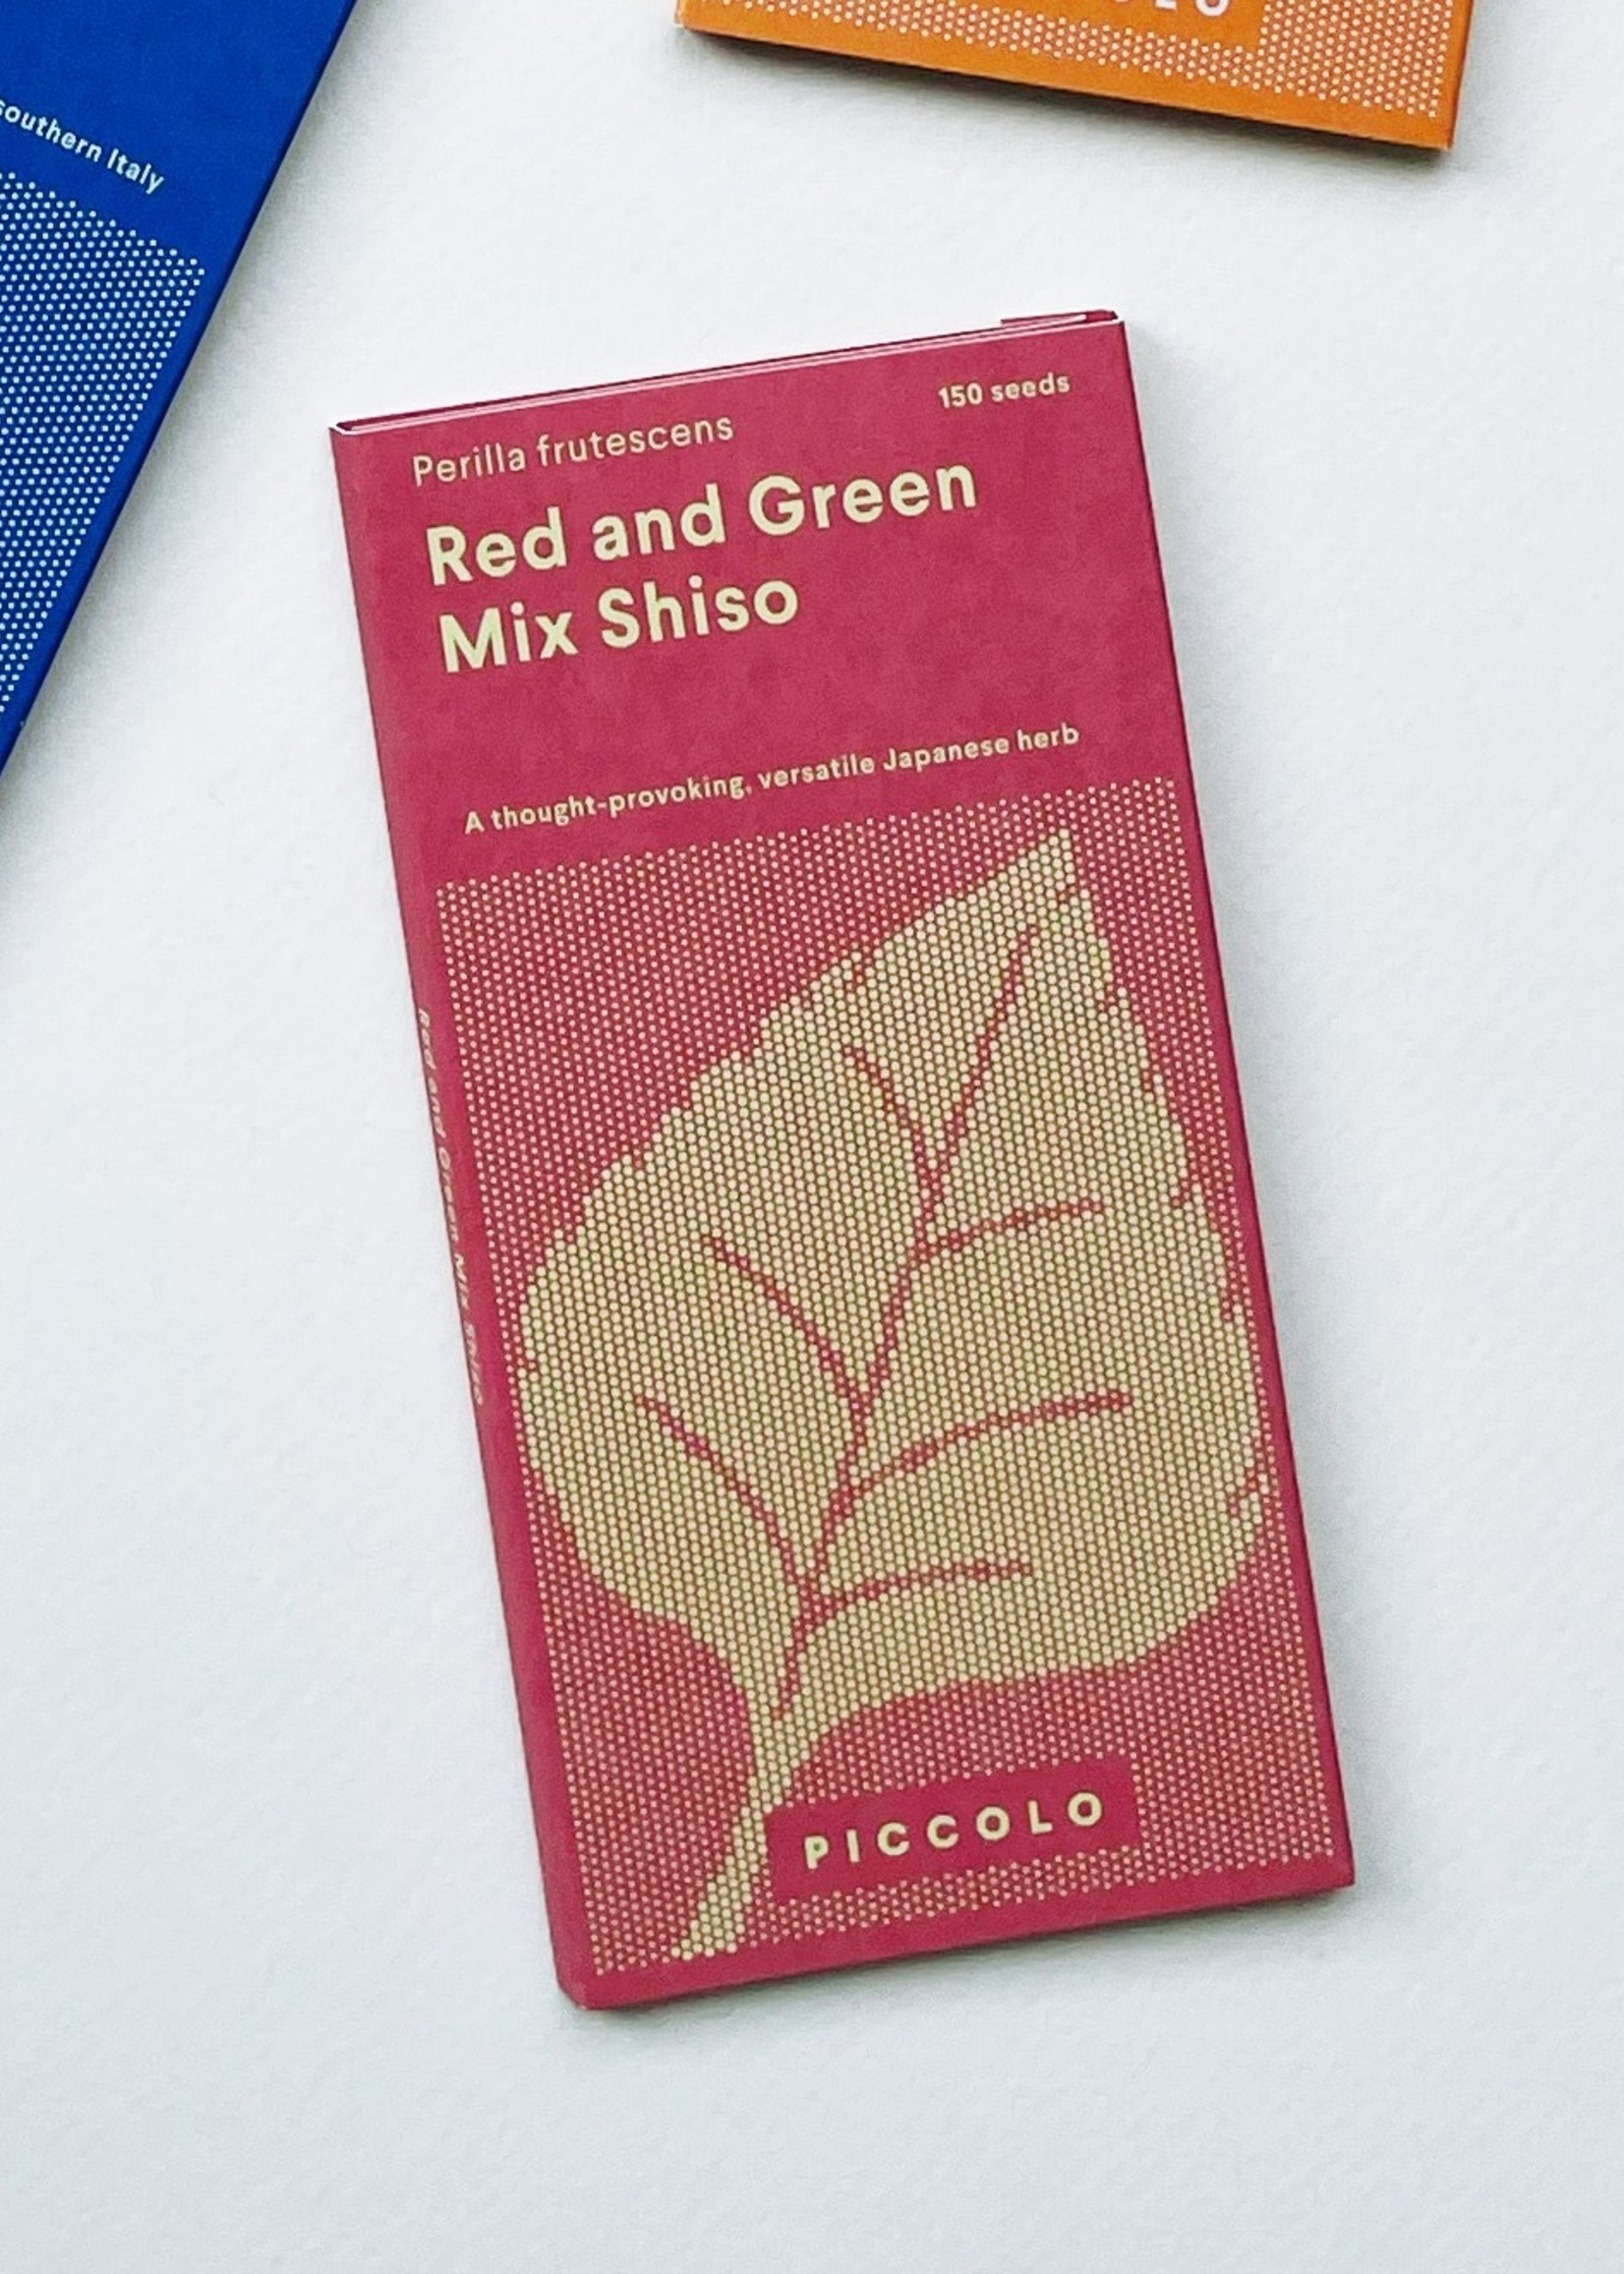 Piccolo Seeds Seed Packets: Fruits and Vegetables